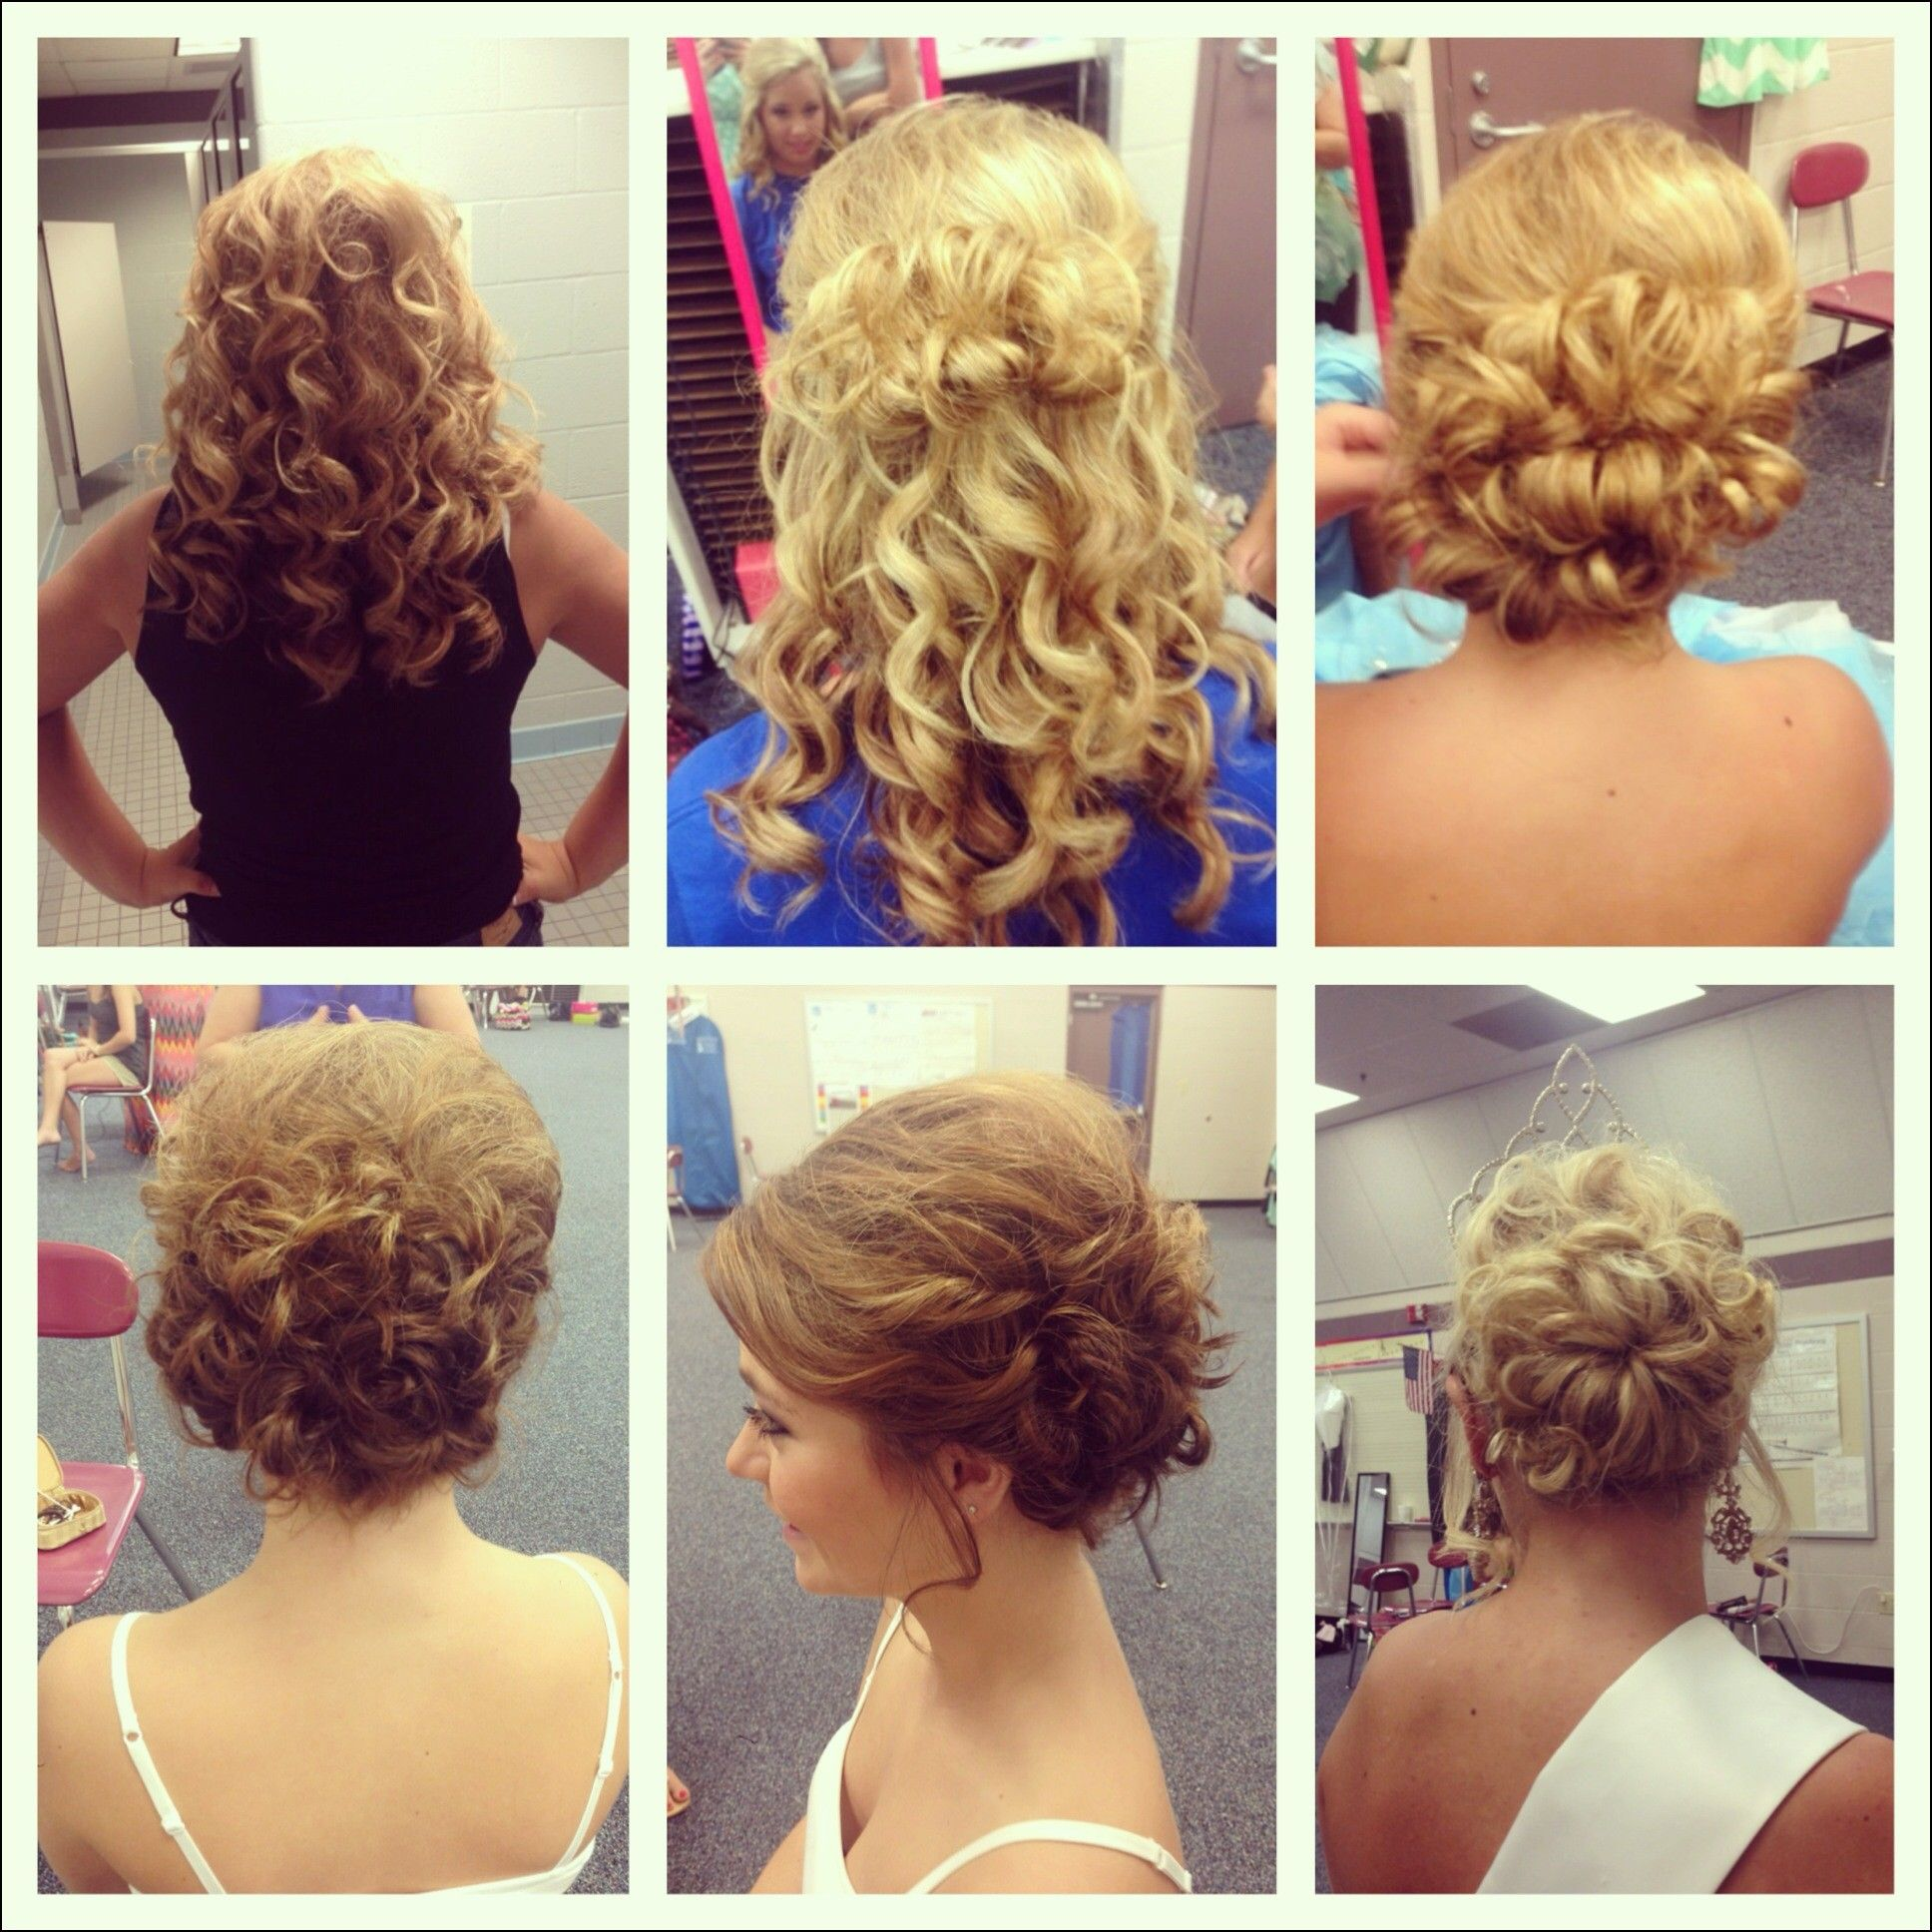 Updo Hairstyles For Pageants Hairstyles Ideas Pinterest